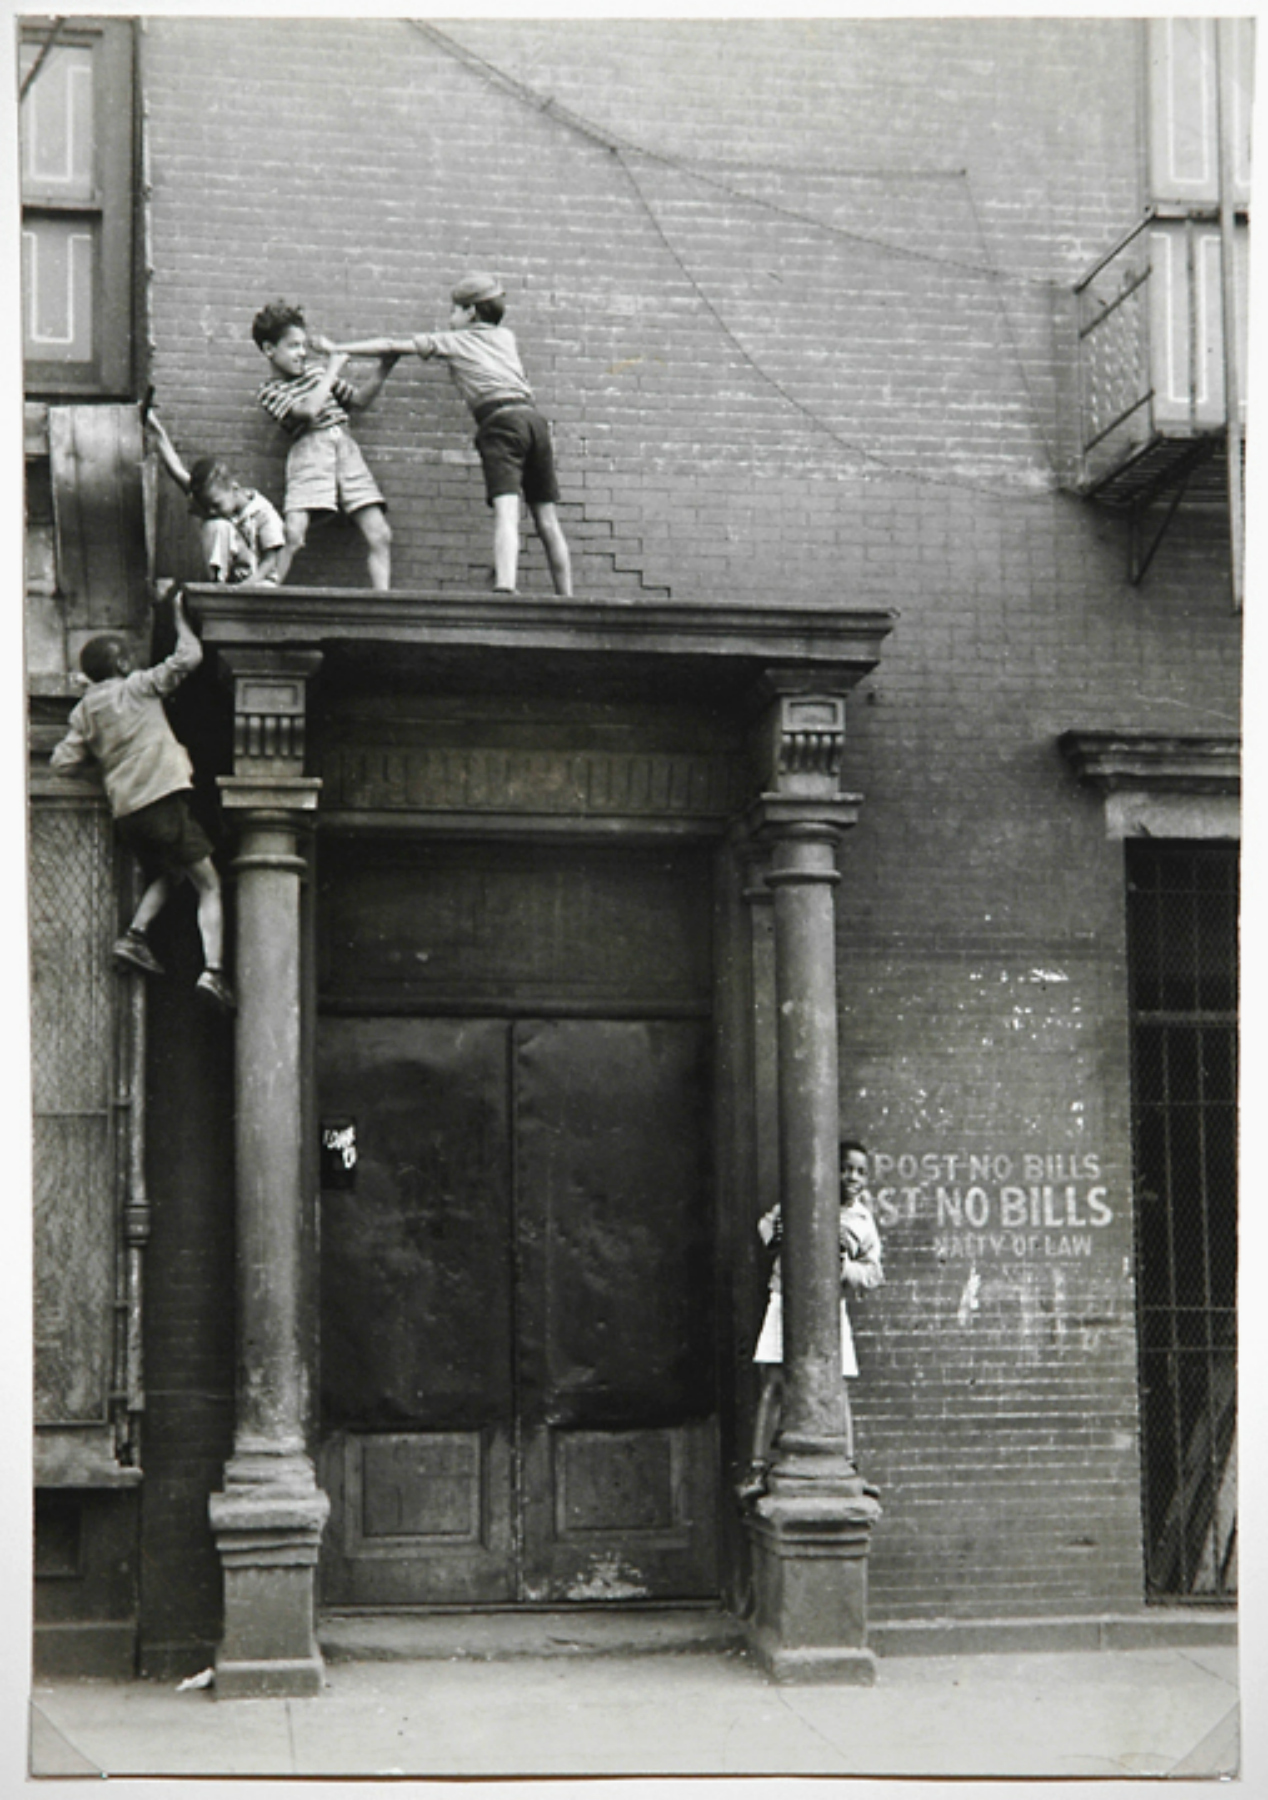 CHILD'S PLAY...Helen Levitt captures kids climbing on to a doorway